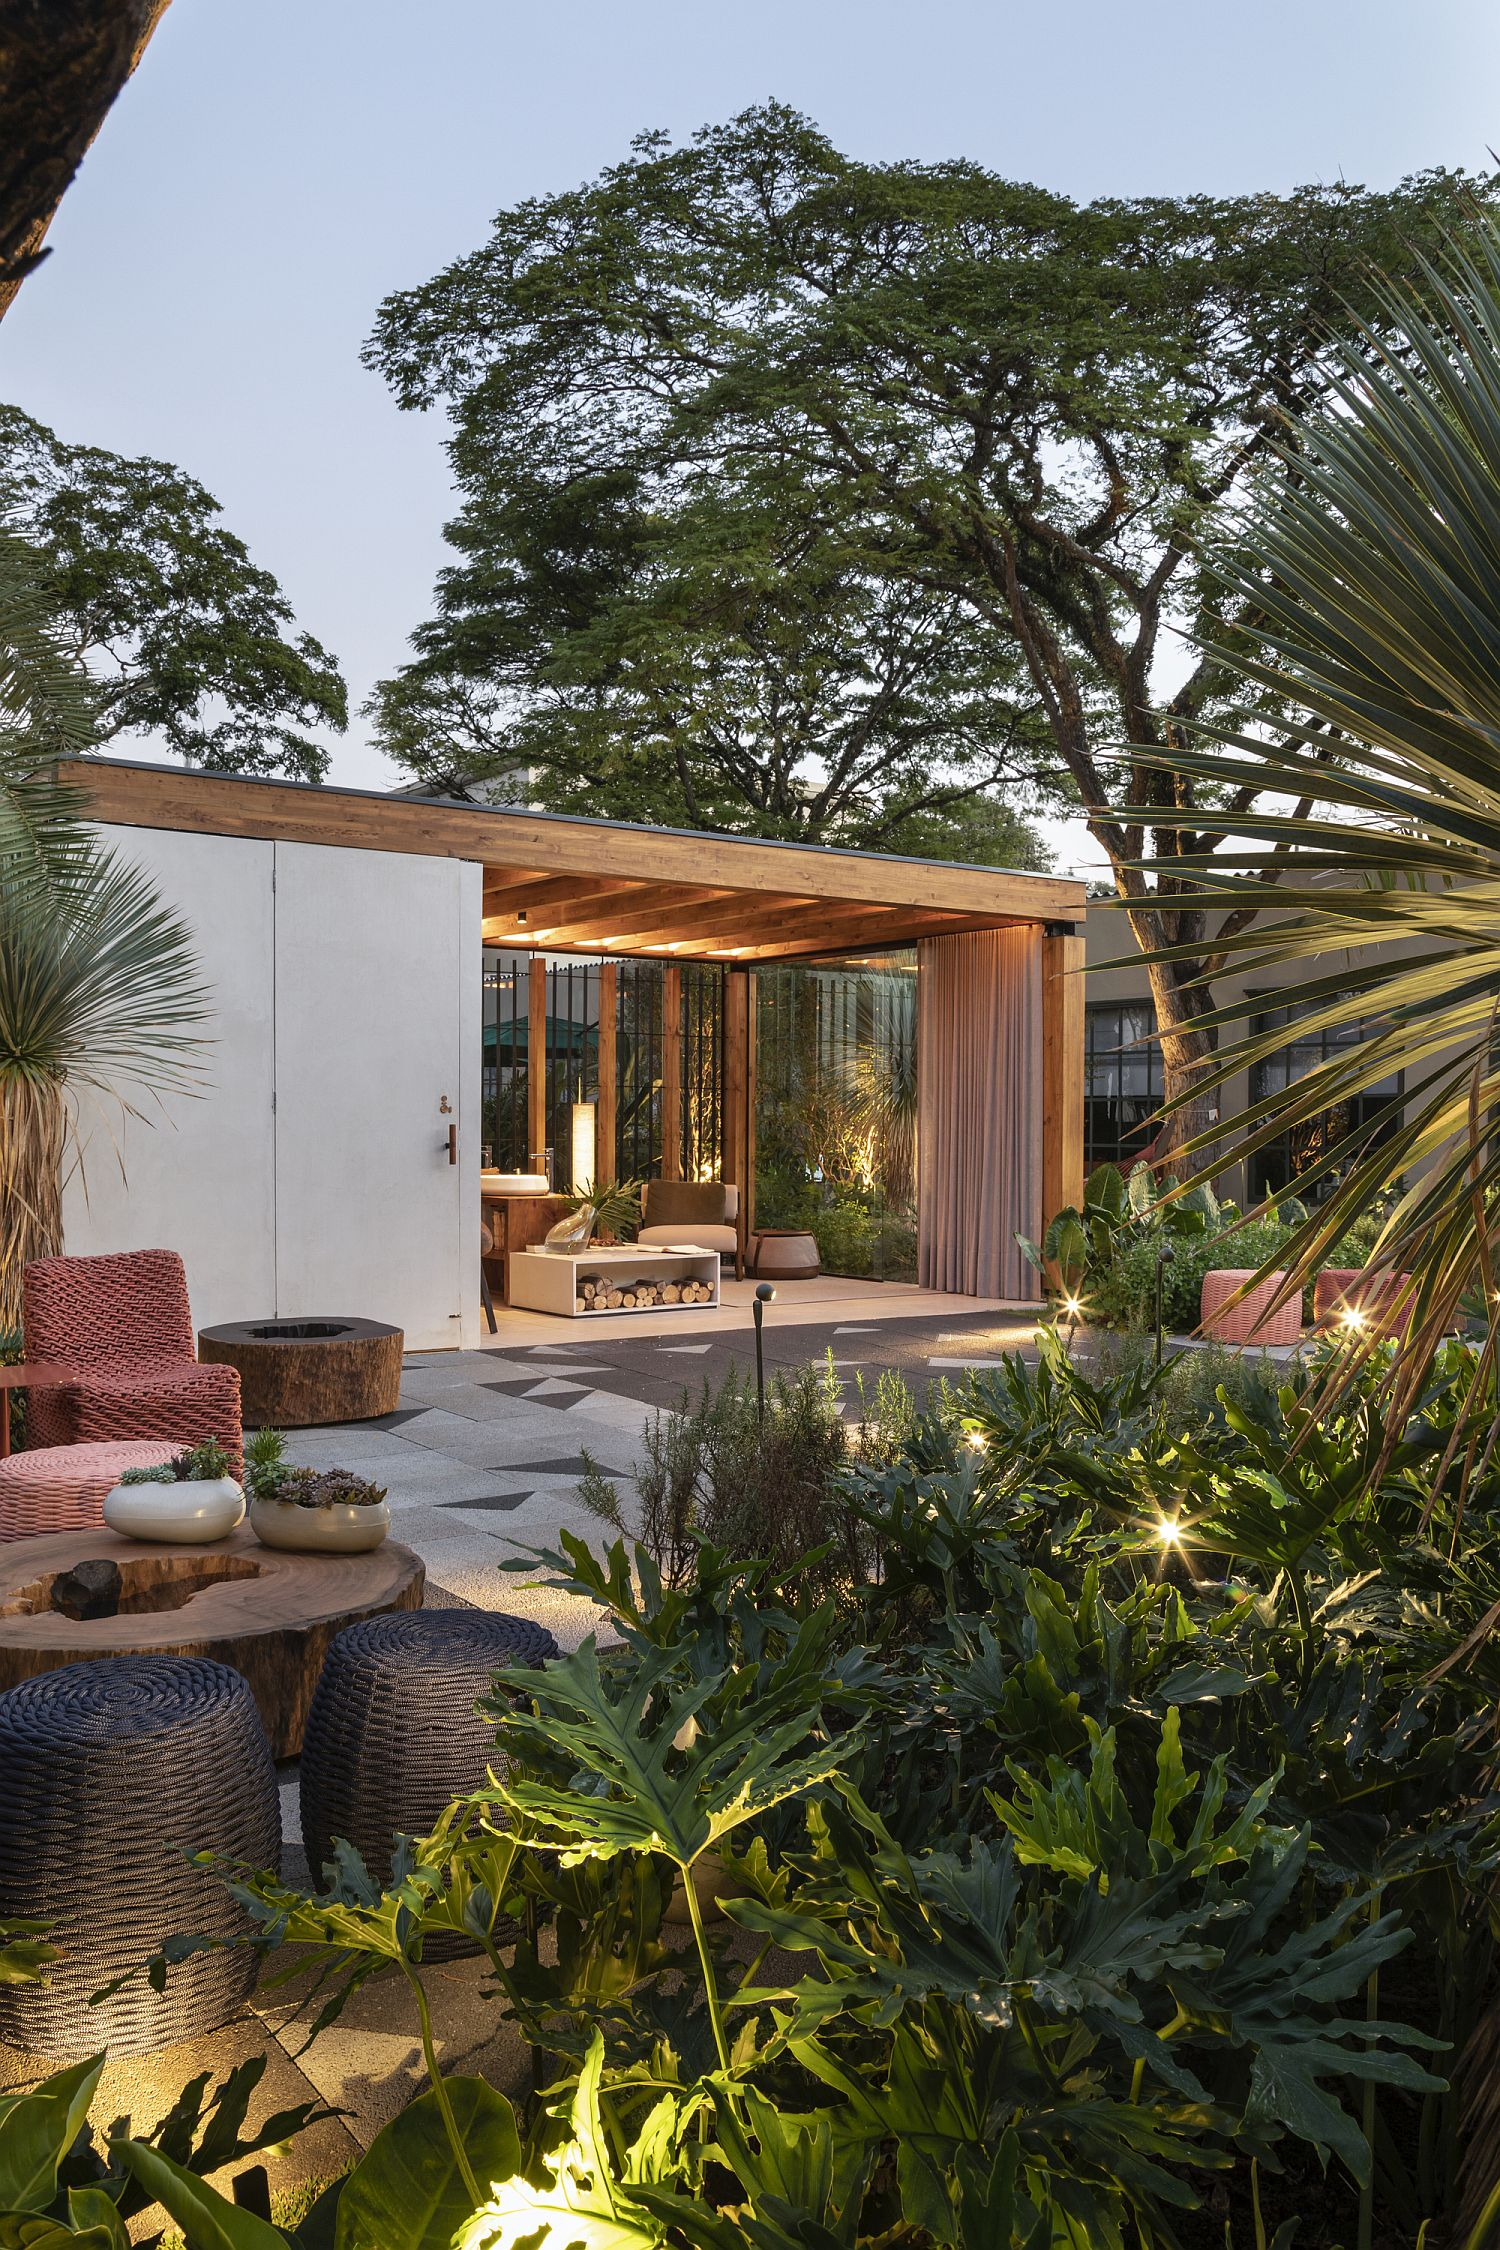 Greenery and lighting create a fabulous setting around the wooden terrace